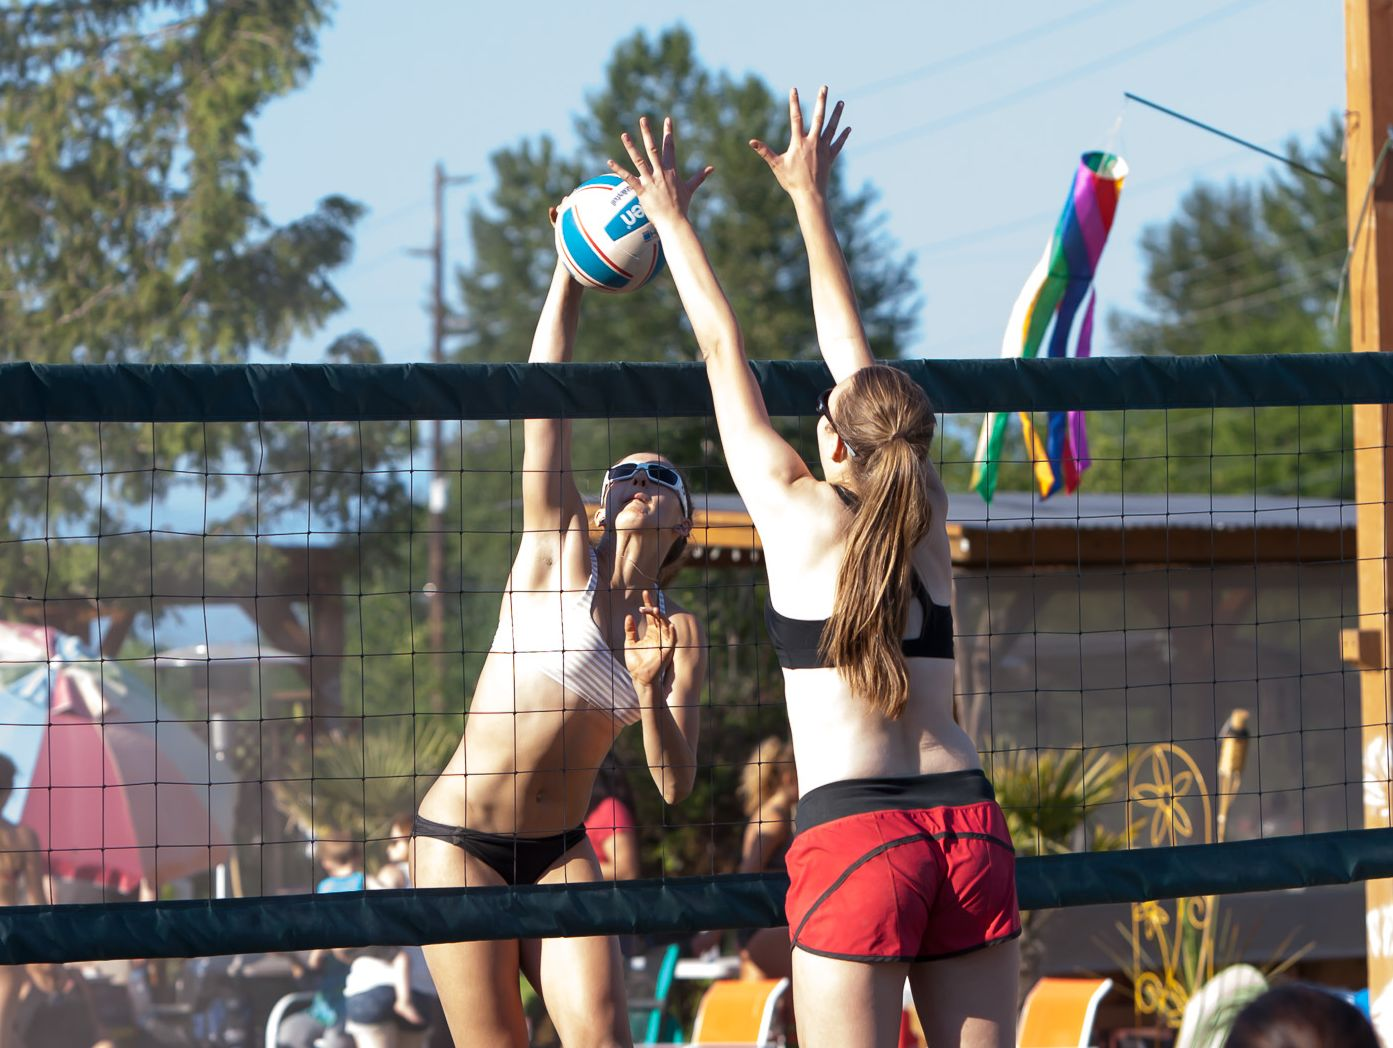 Garfield outside hitter Deahna Kraft (left) during a 2015 sand tournament at Bottega Fitness Park in Snohomish.